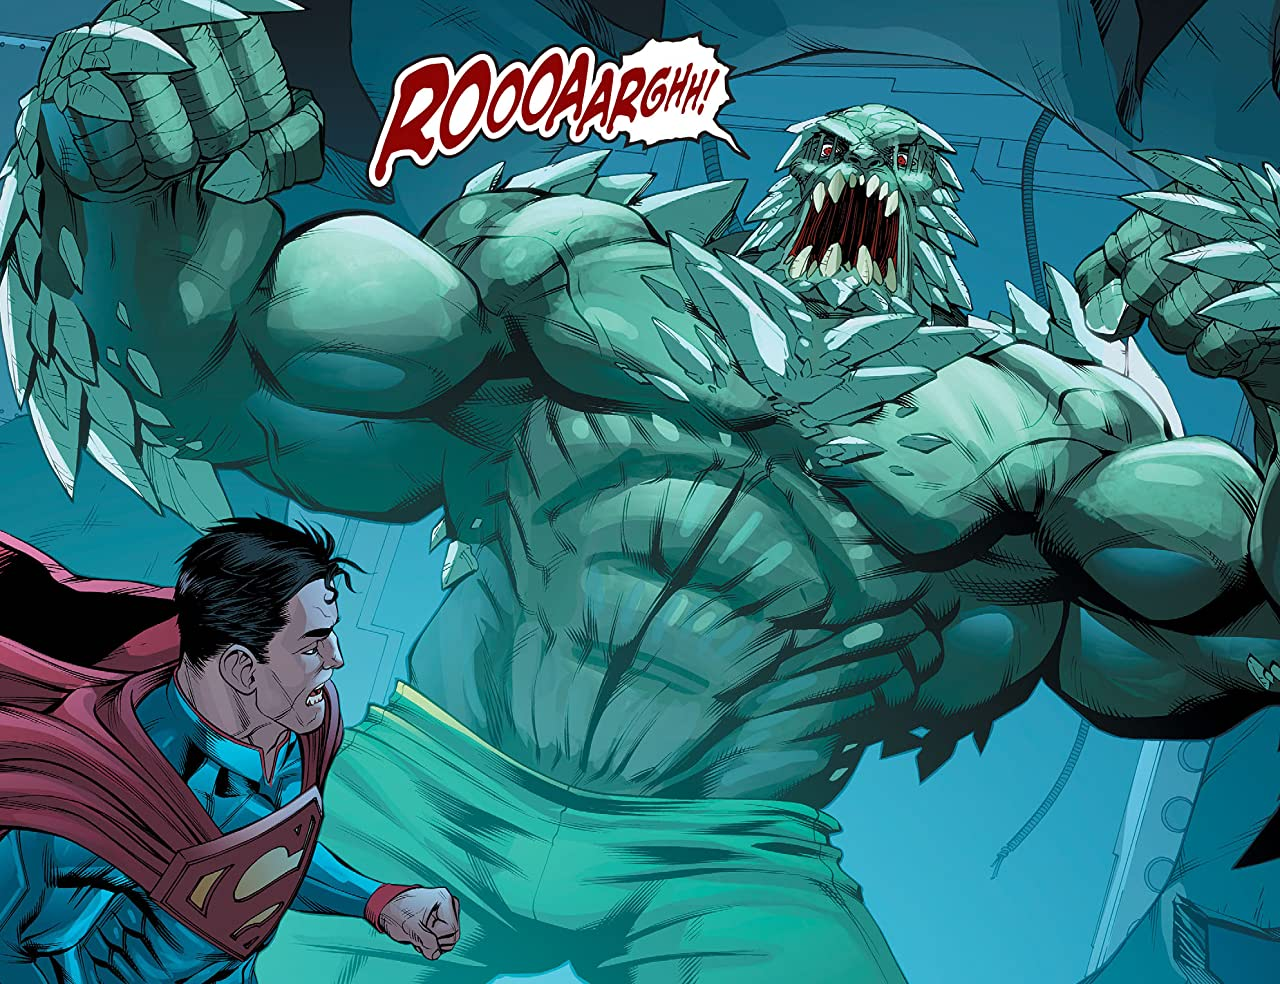 Injustice: Gods Among Us (2013) No.3